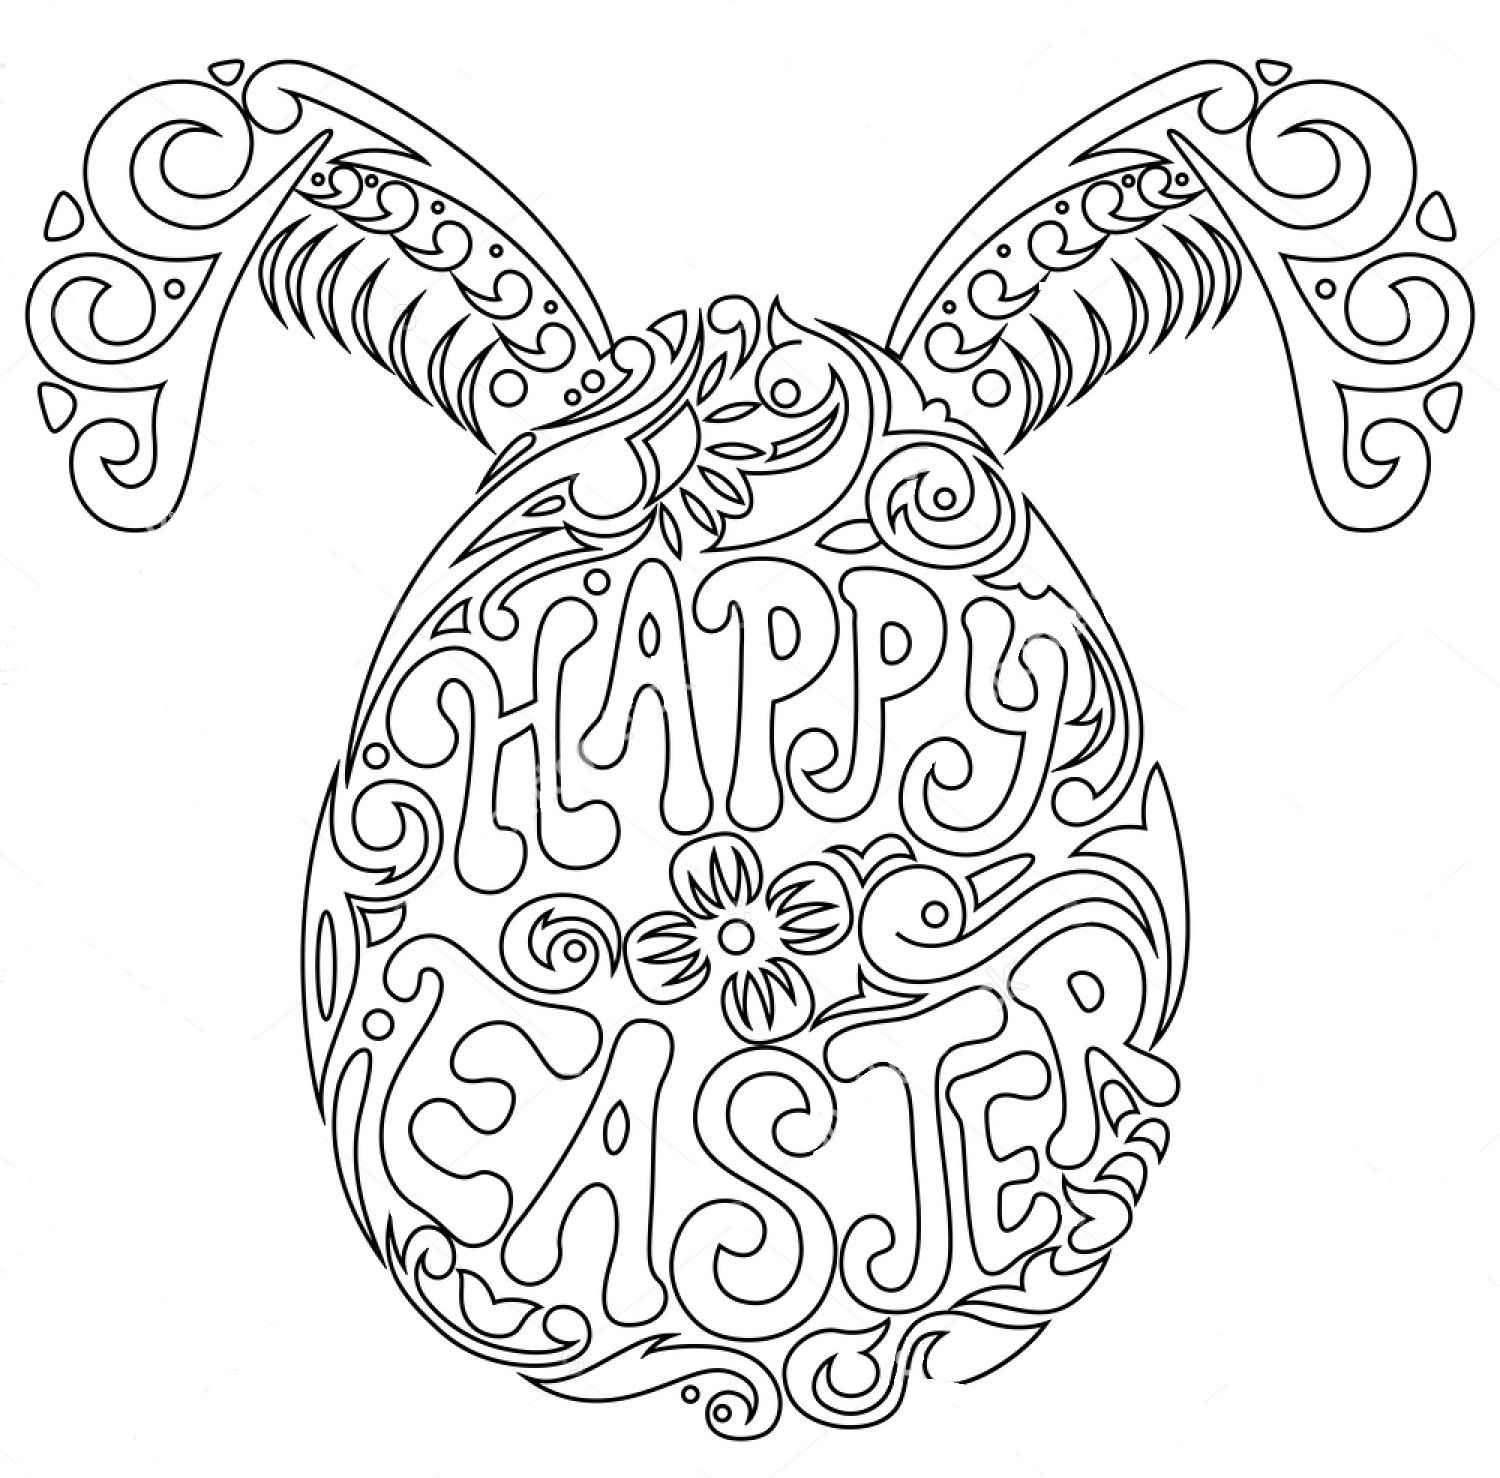 Happy Easter Zentangle Coloring Page